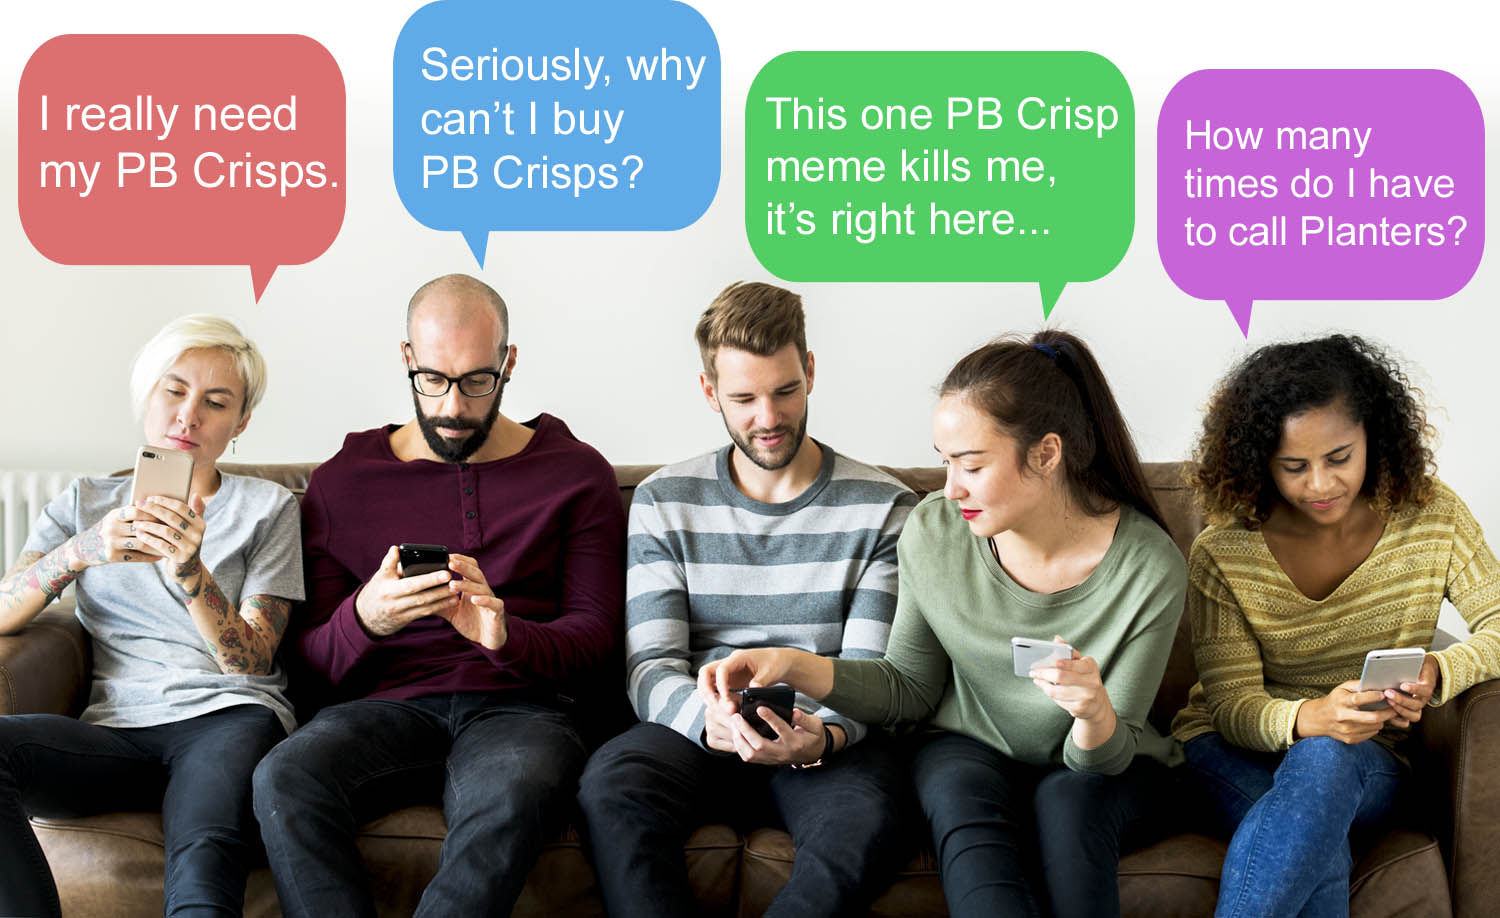 A group of people looking at their phones. Each of them puzzled as to why they cannot purchase PB Crisps.